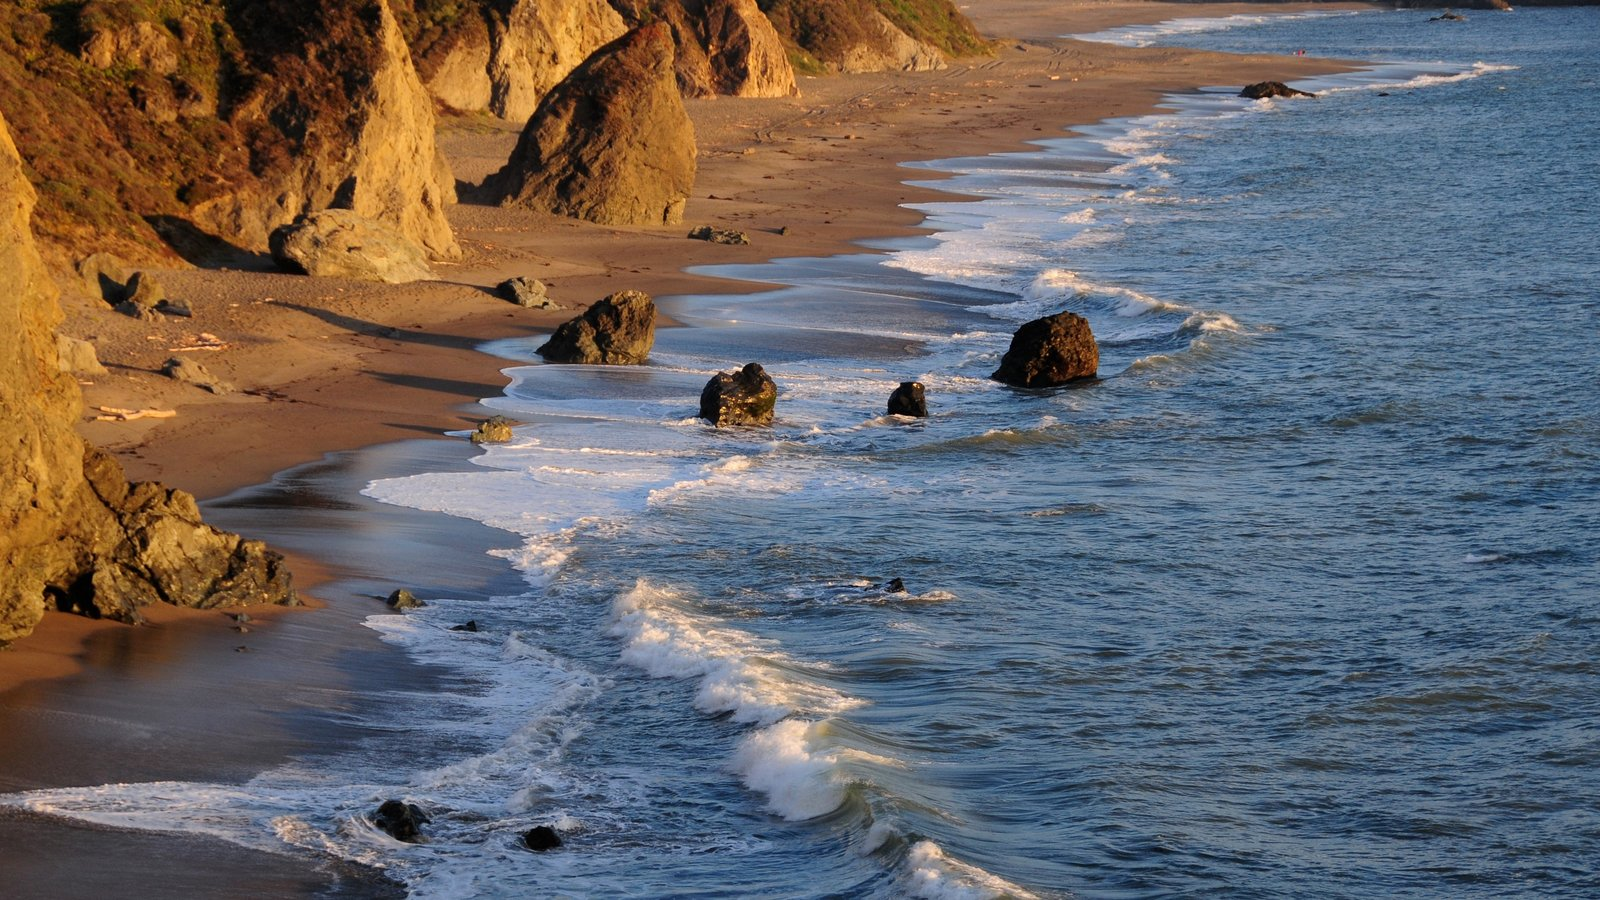 Sonoma Valley featuring a sandy beach